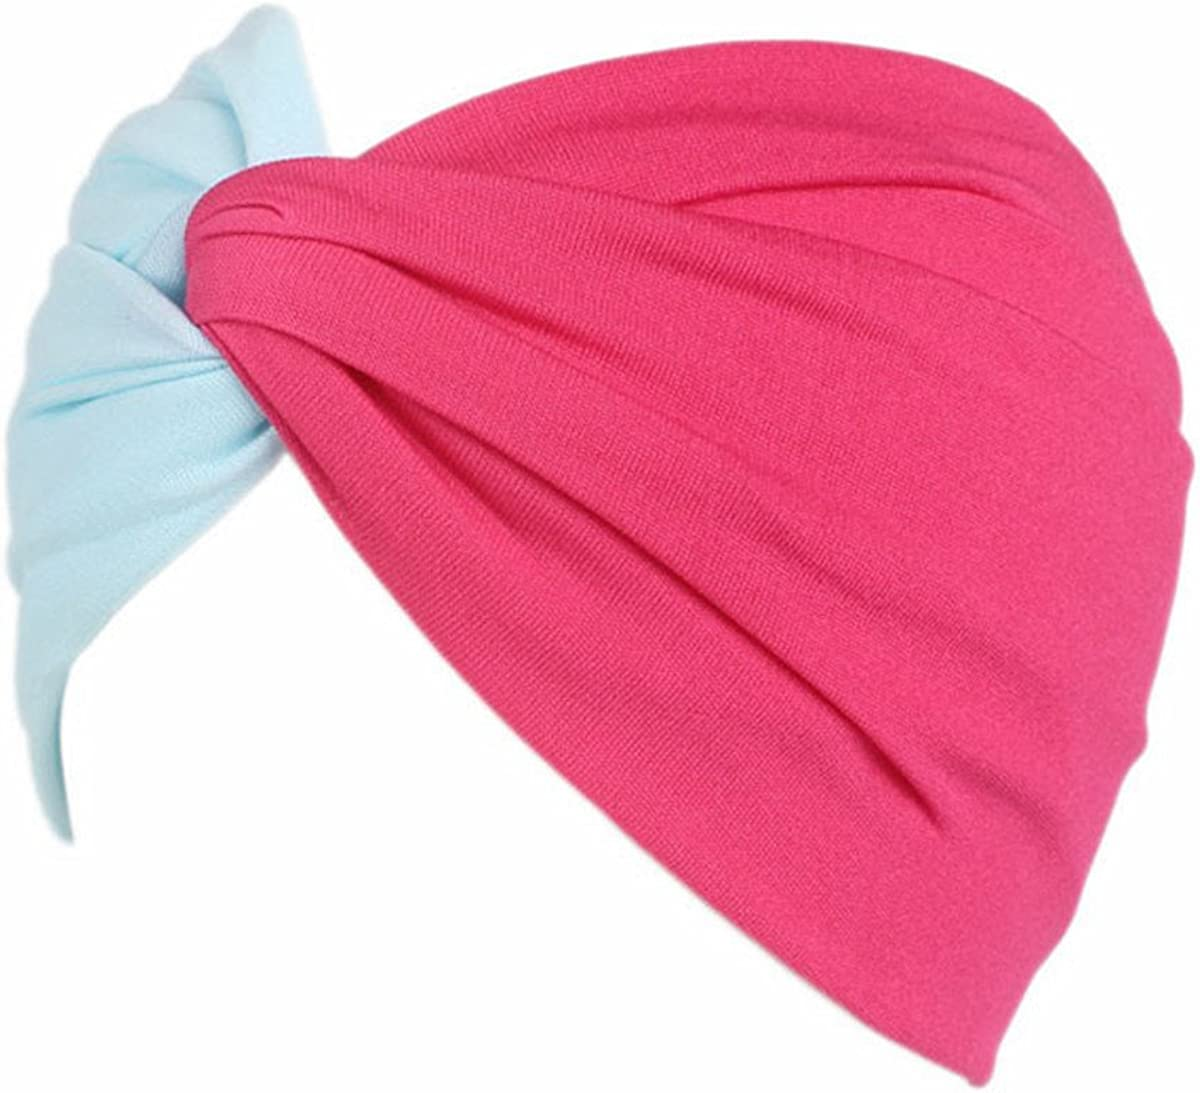 Qhome Twist Knot Headband Stretch Lycra Turban Ealstic Hair Band Headbands Two Bright Color Style